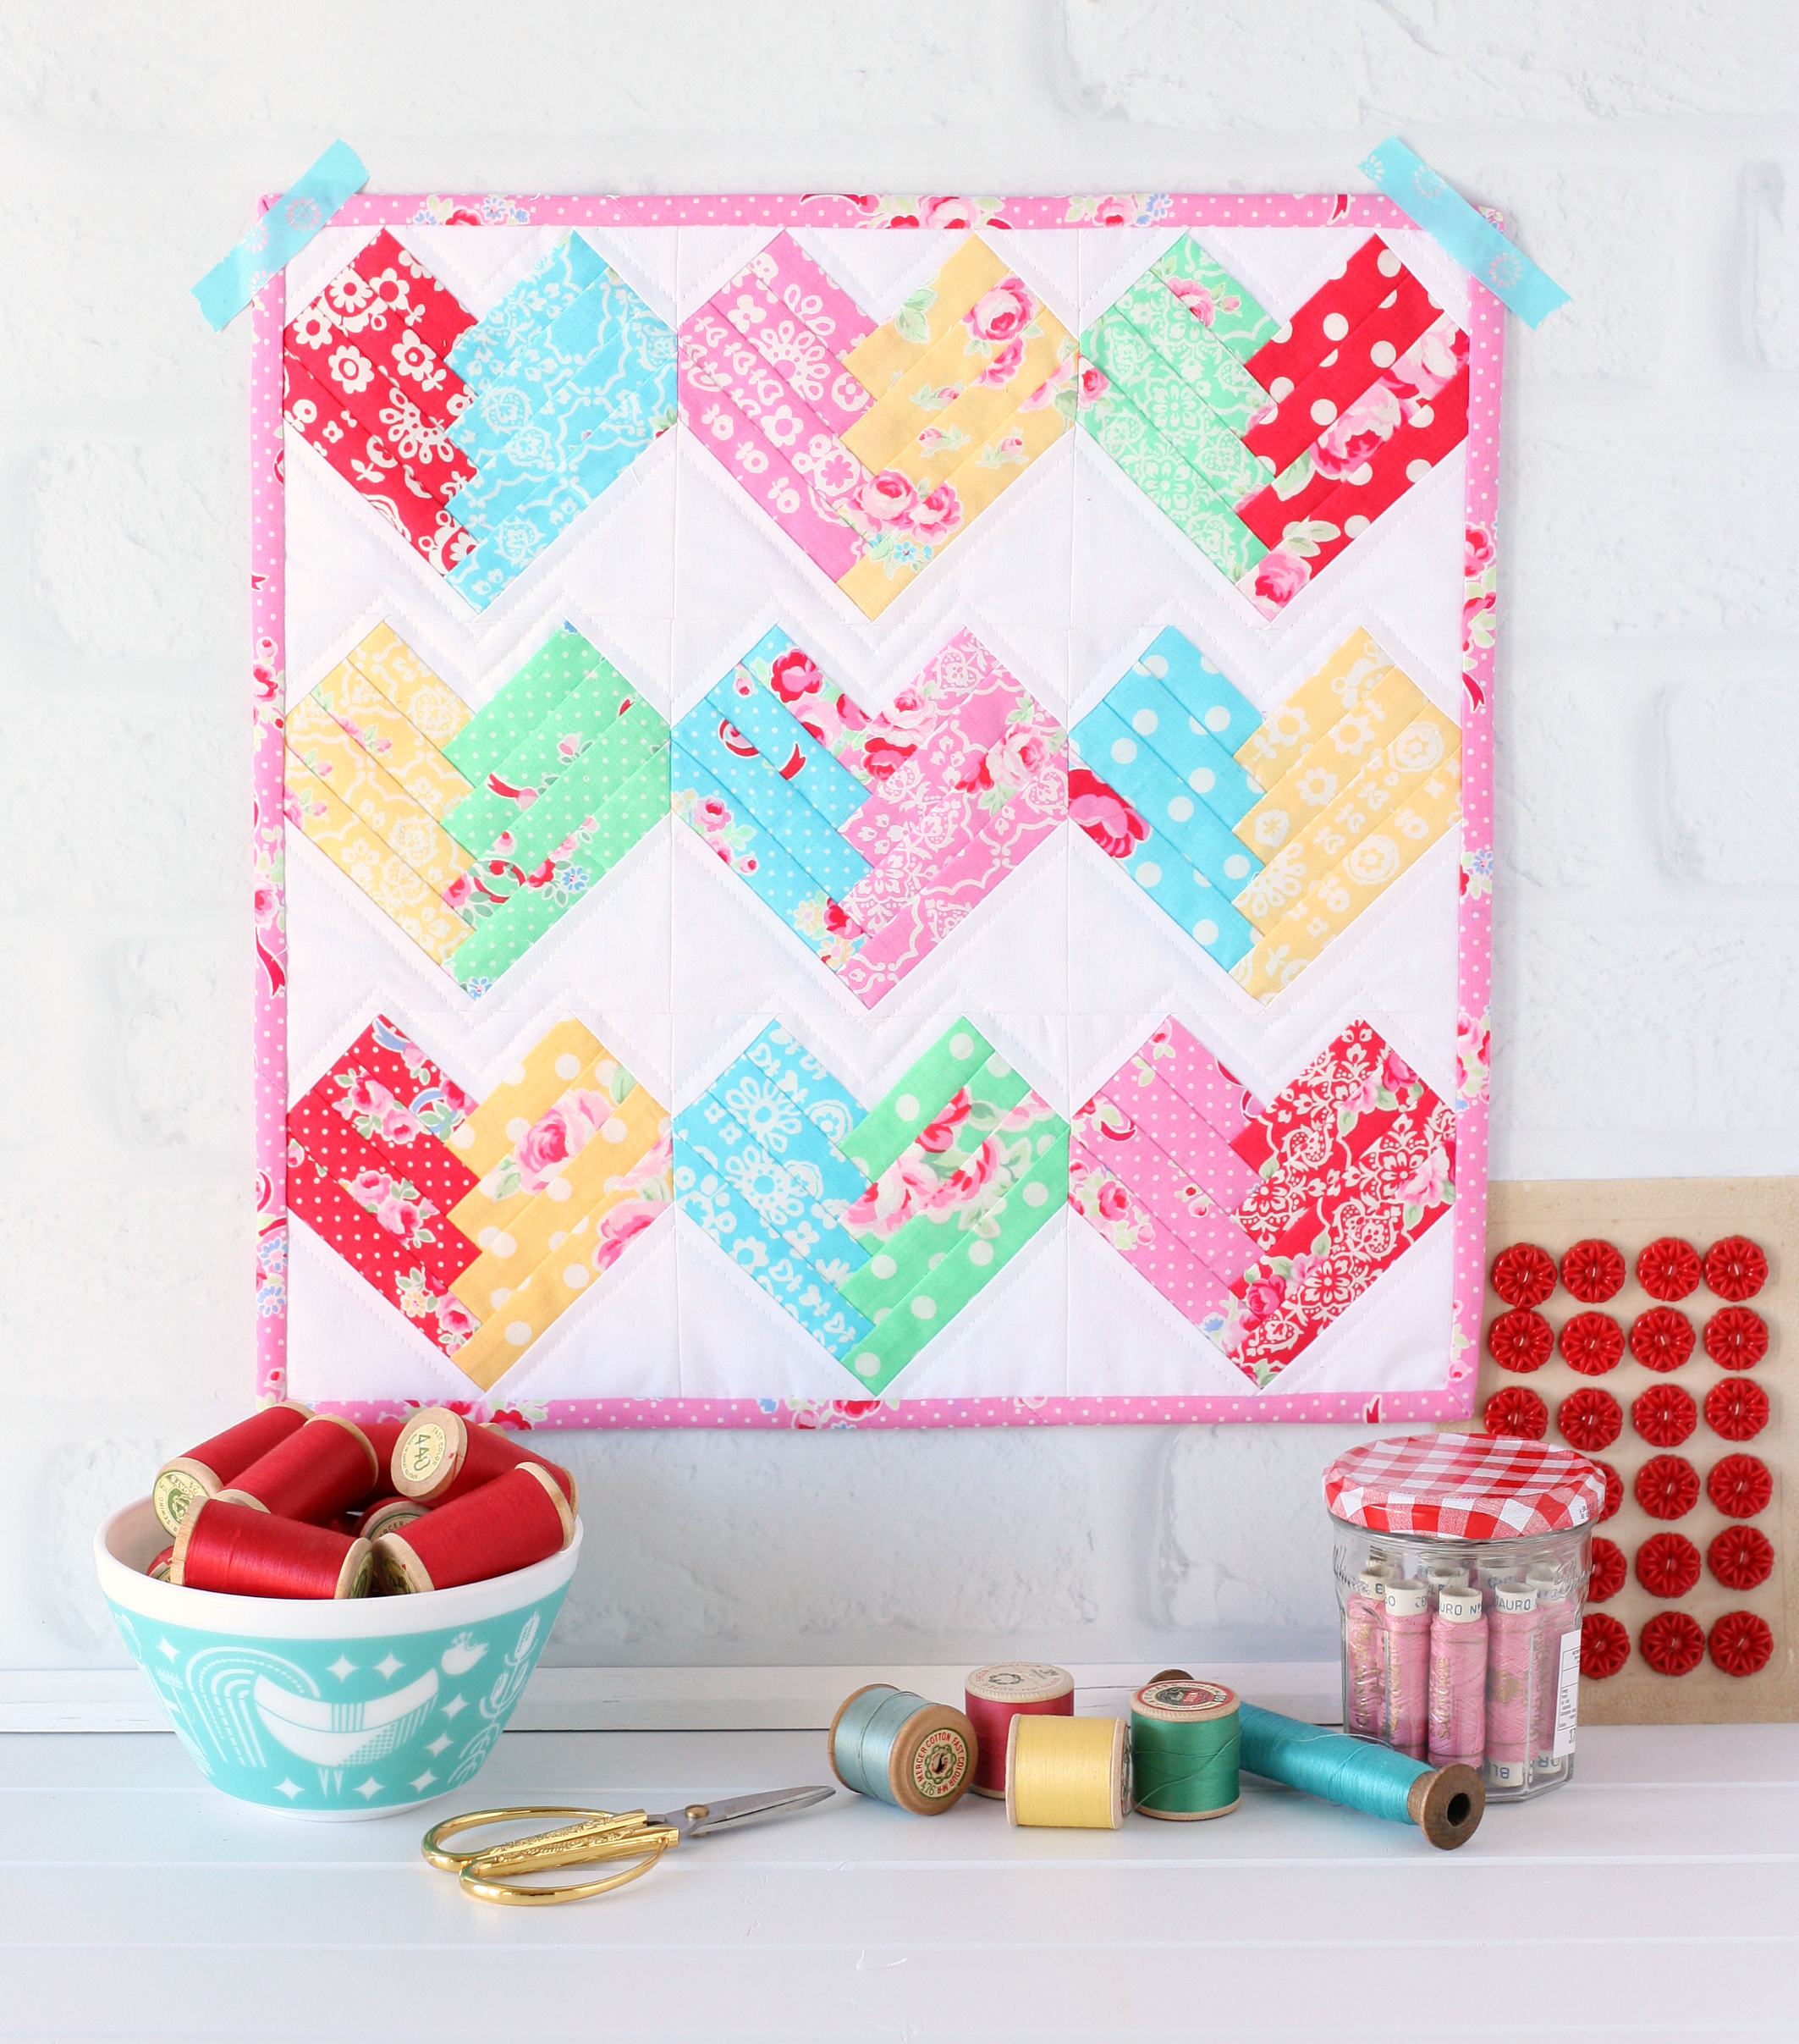 Valentines Sewing Projects from A Spoonful of Sugar   www.aspoonfulofsugardesigns.com